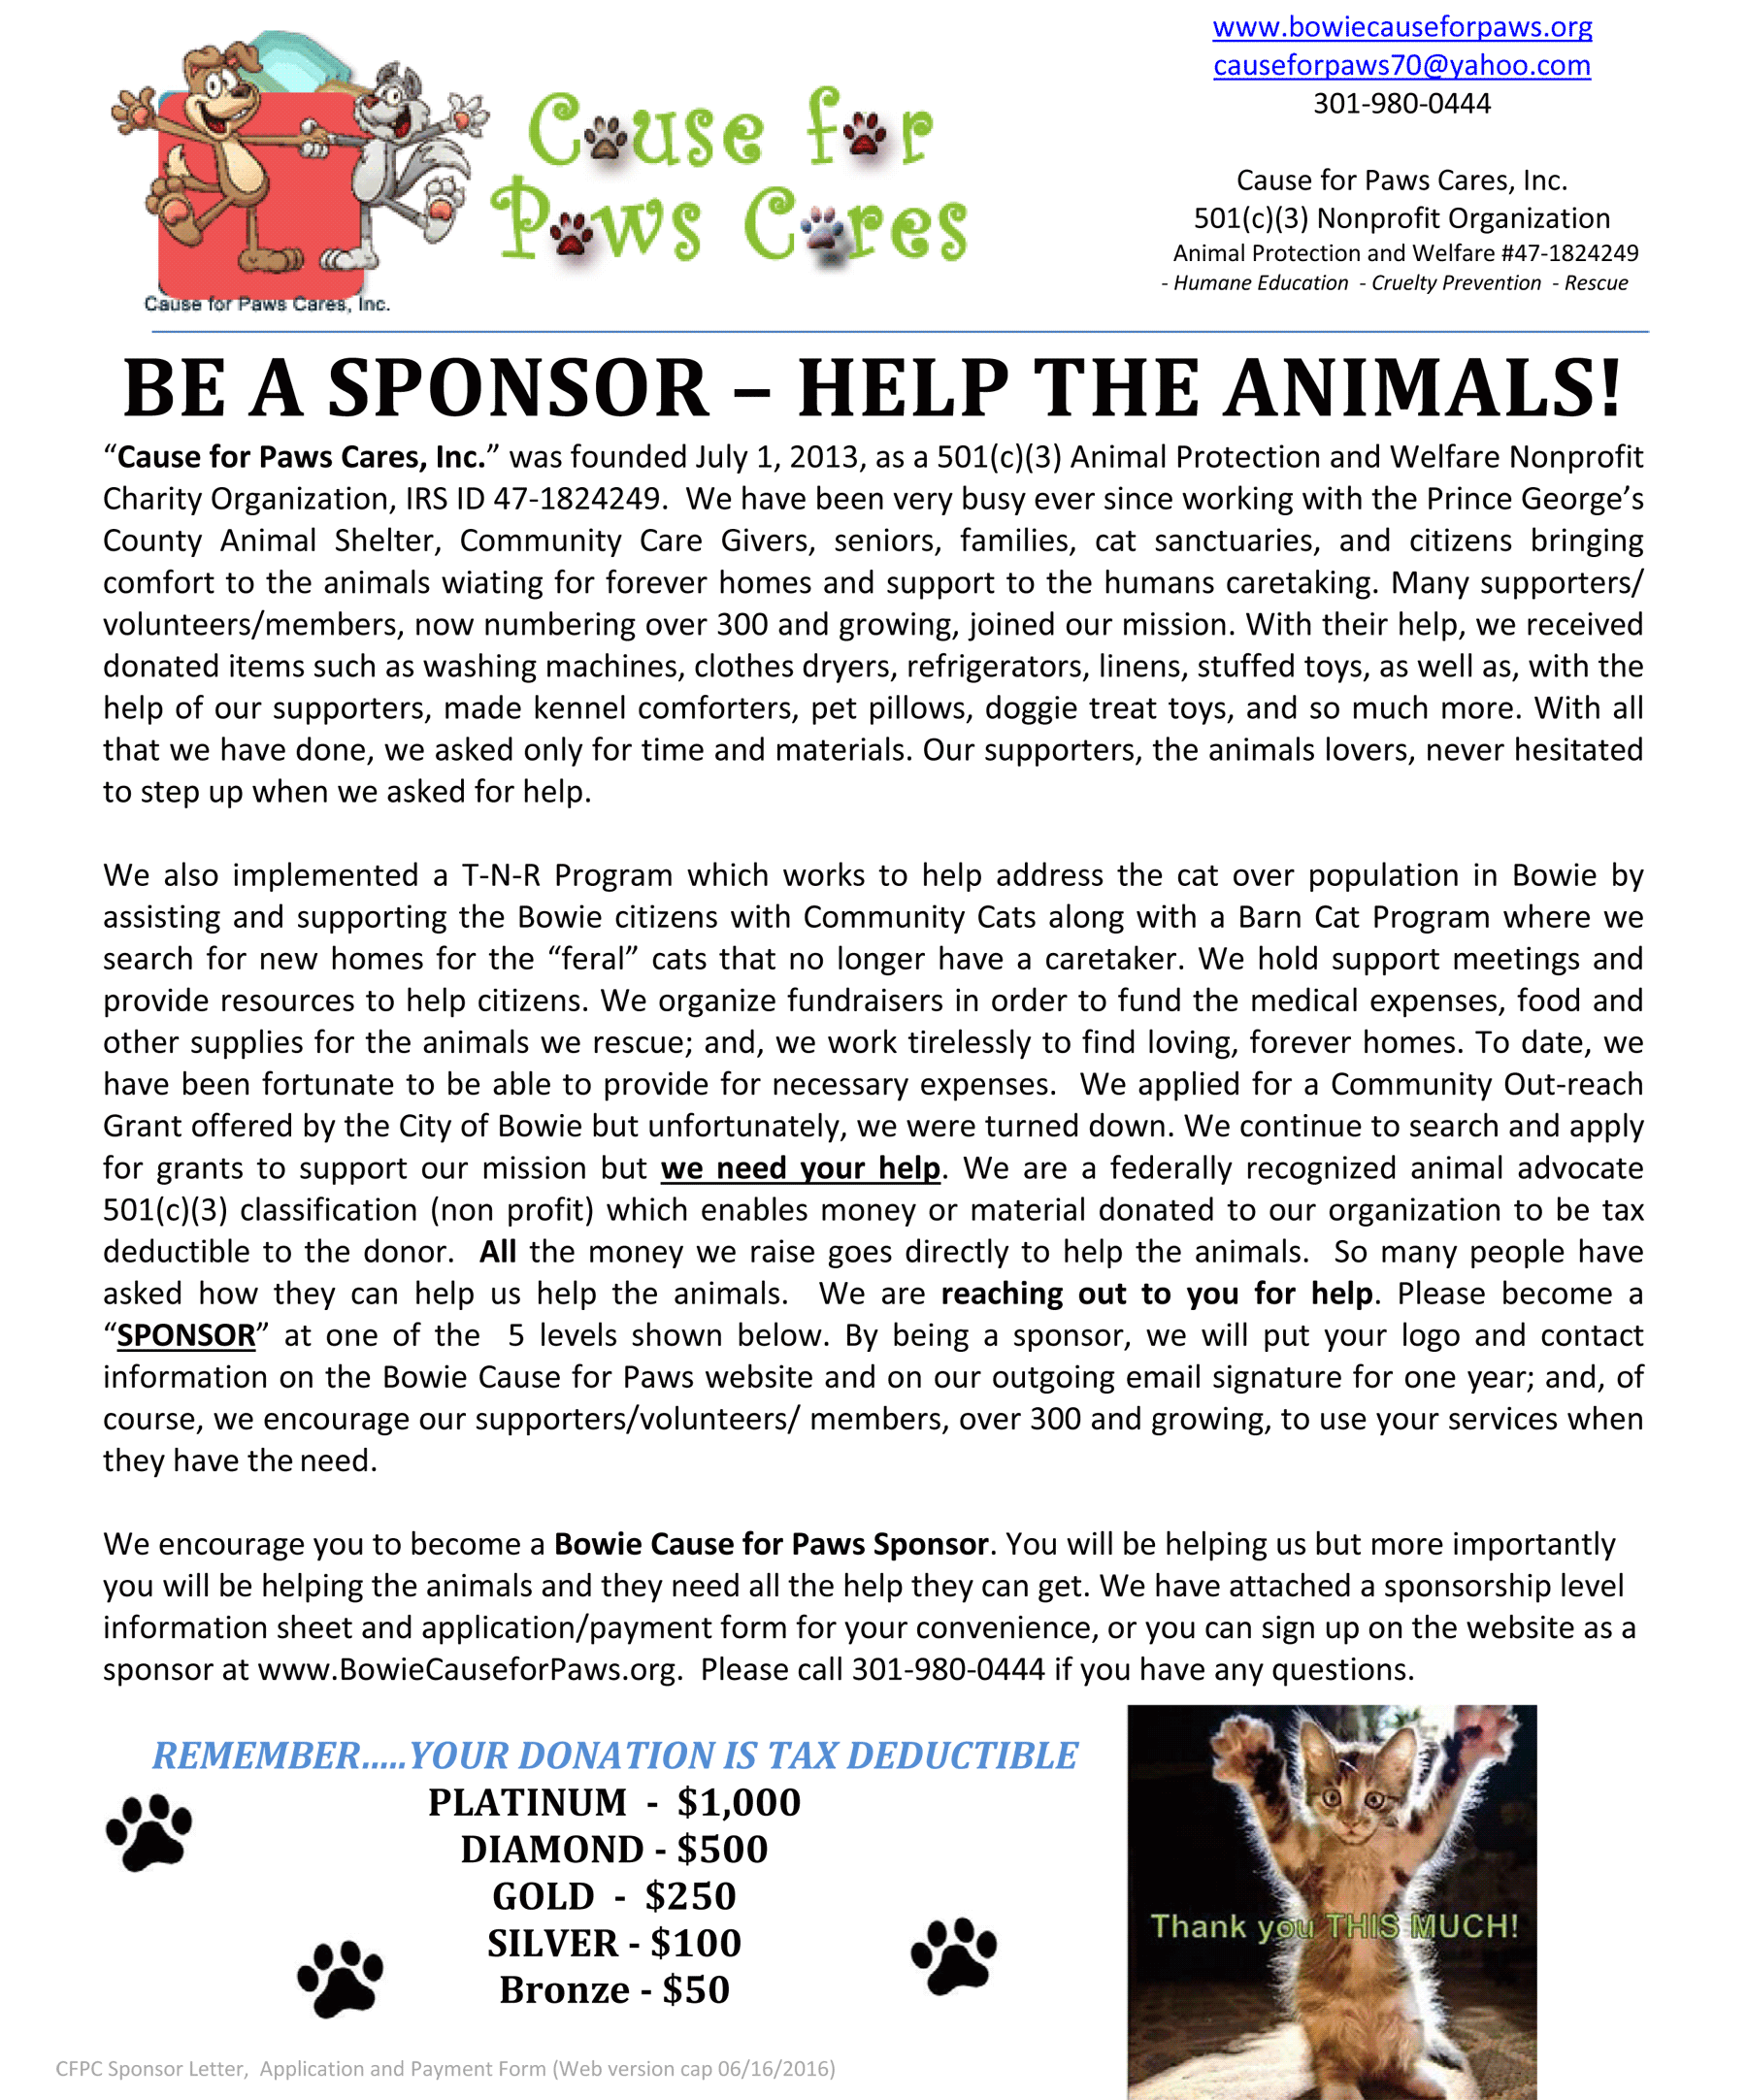 Cause for paws cares inc become a sponsor download sponsor letter application and payment form pdf doc thecheapjerseys Choice Image